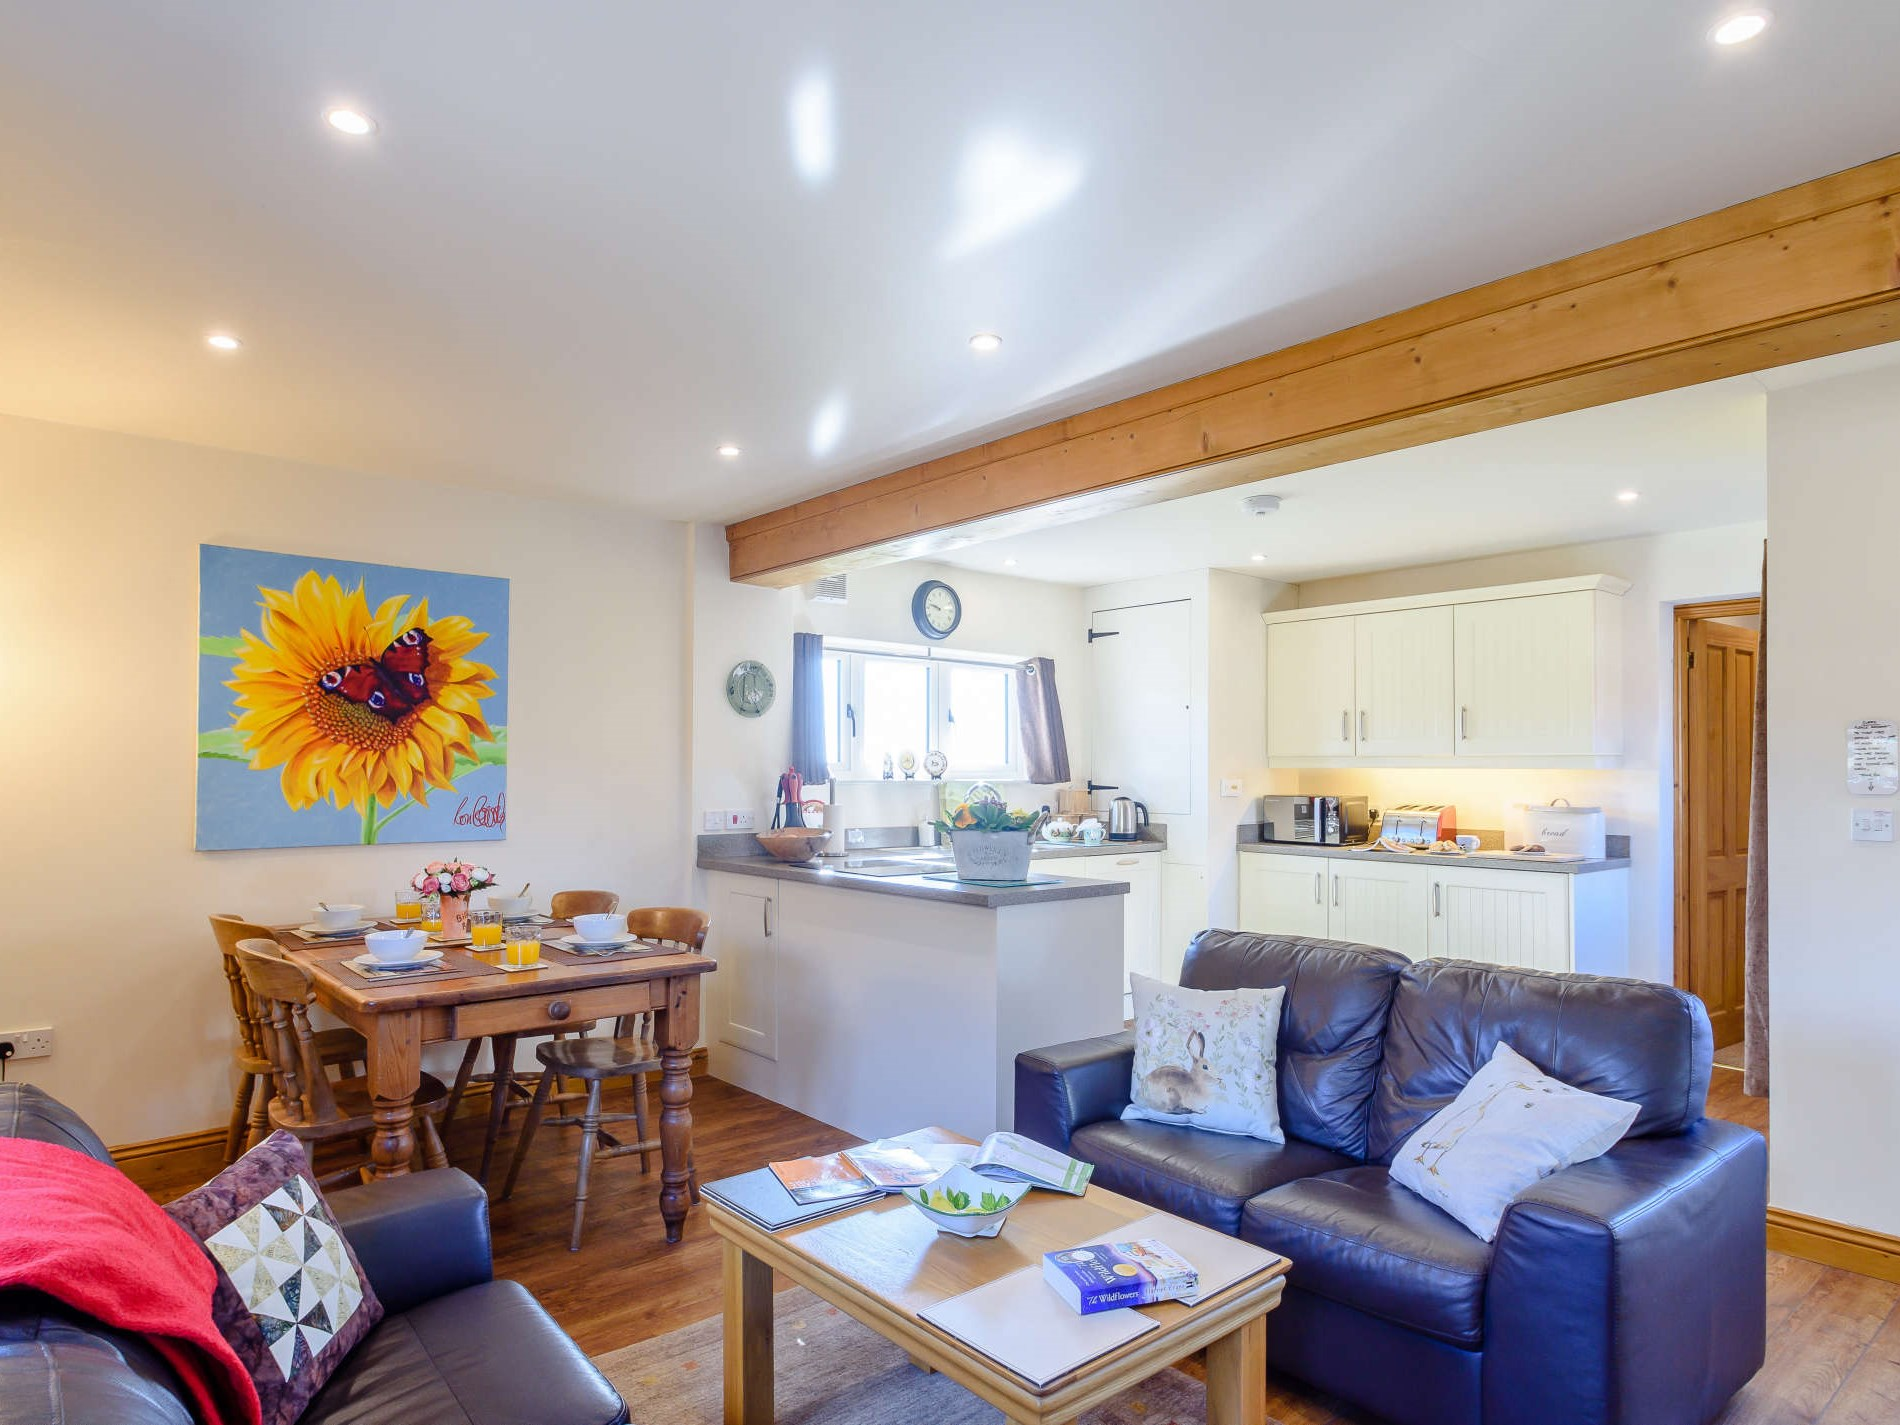 2 Bedroom Cottage in Pickering, Yorkshire Dales